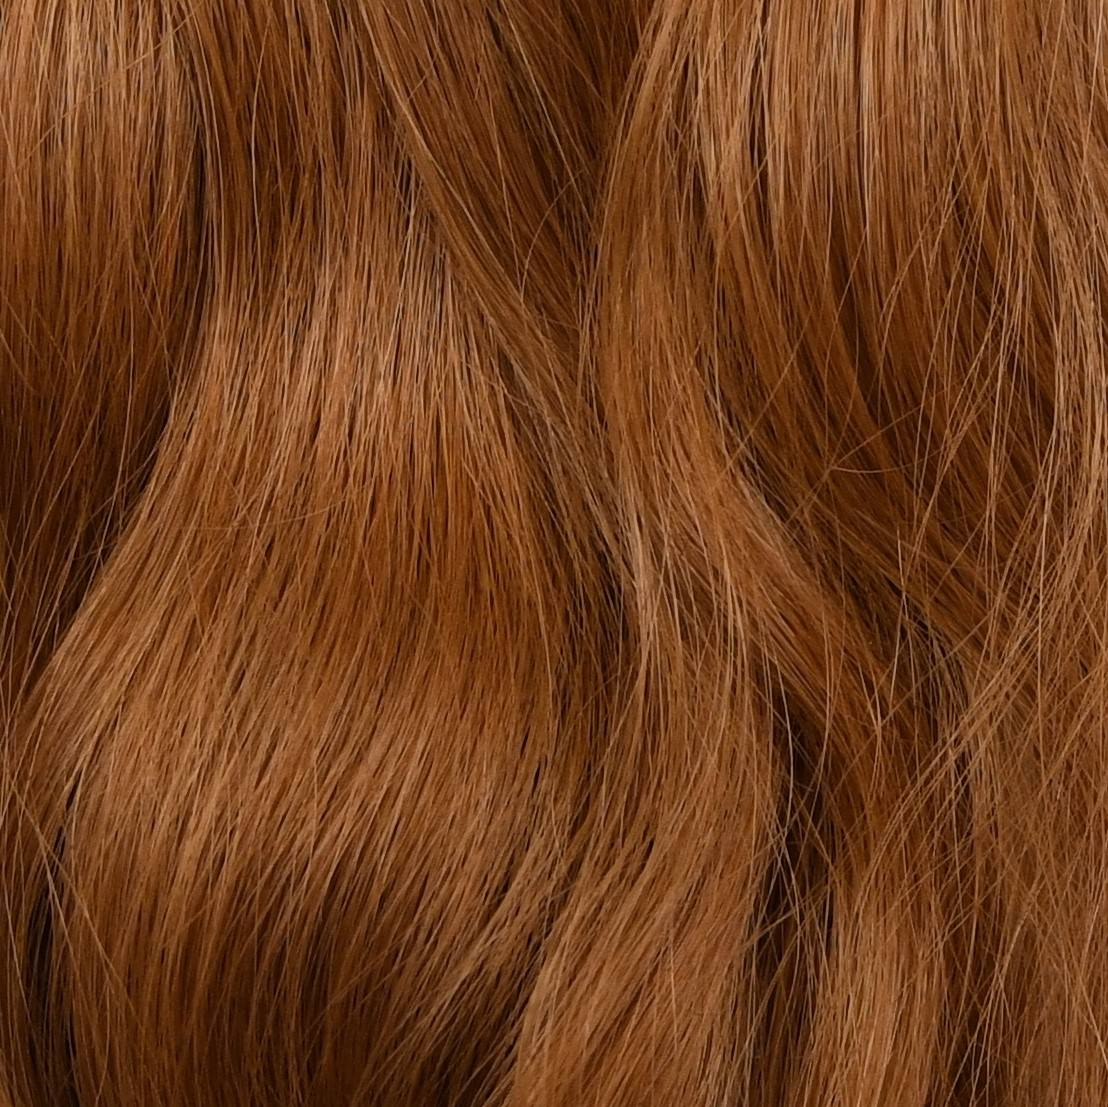 dark red hair extensions color sample in hair color chart